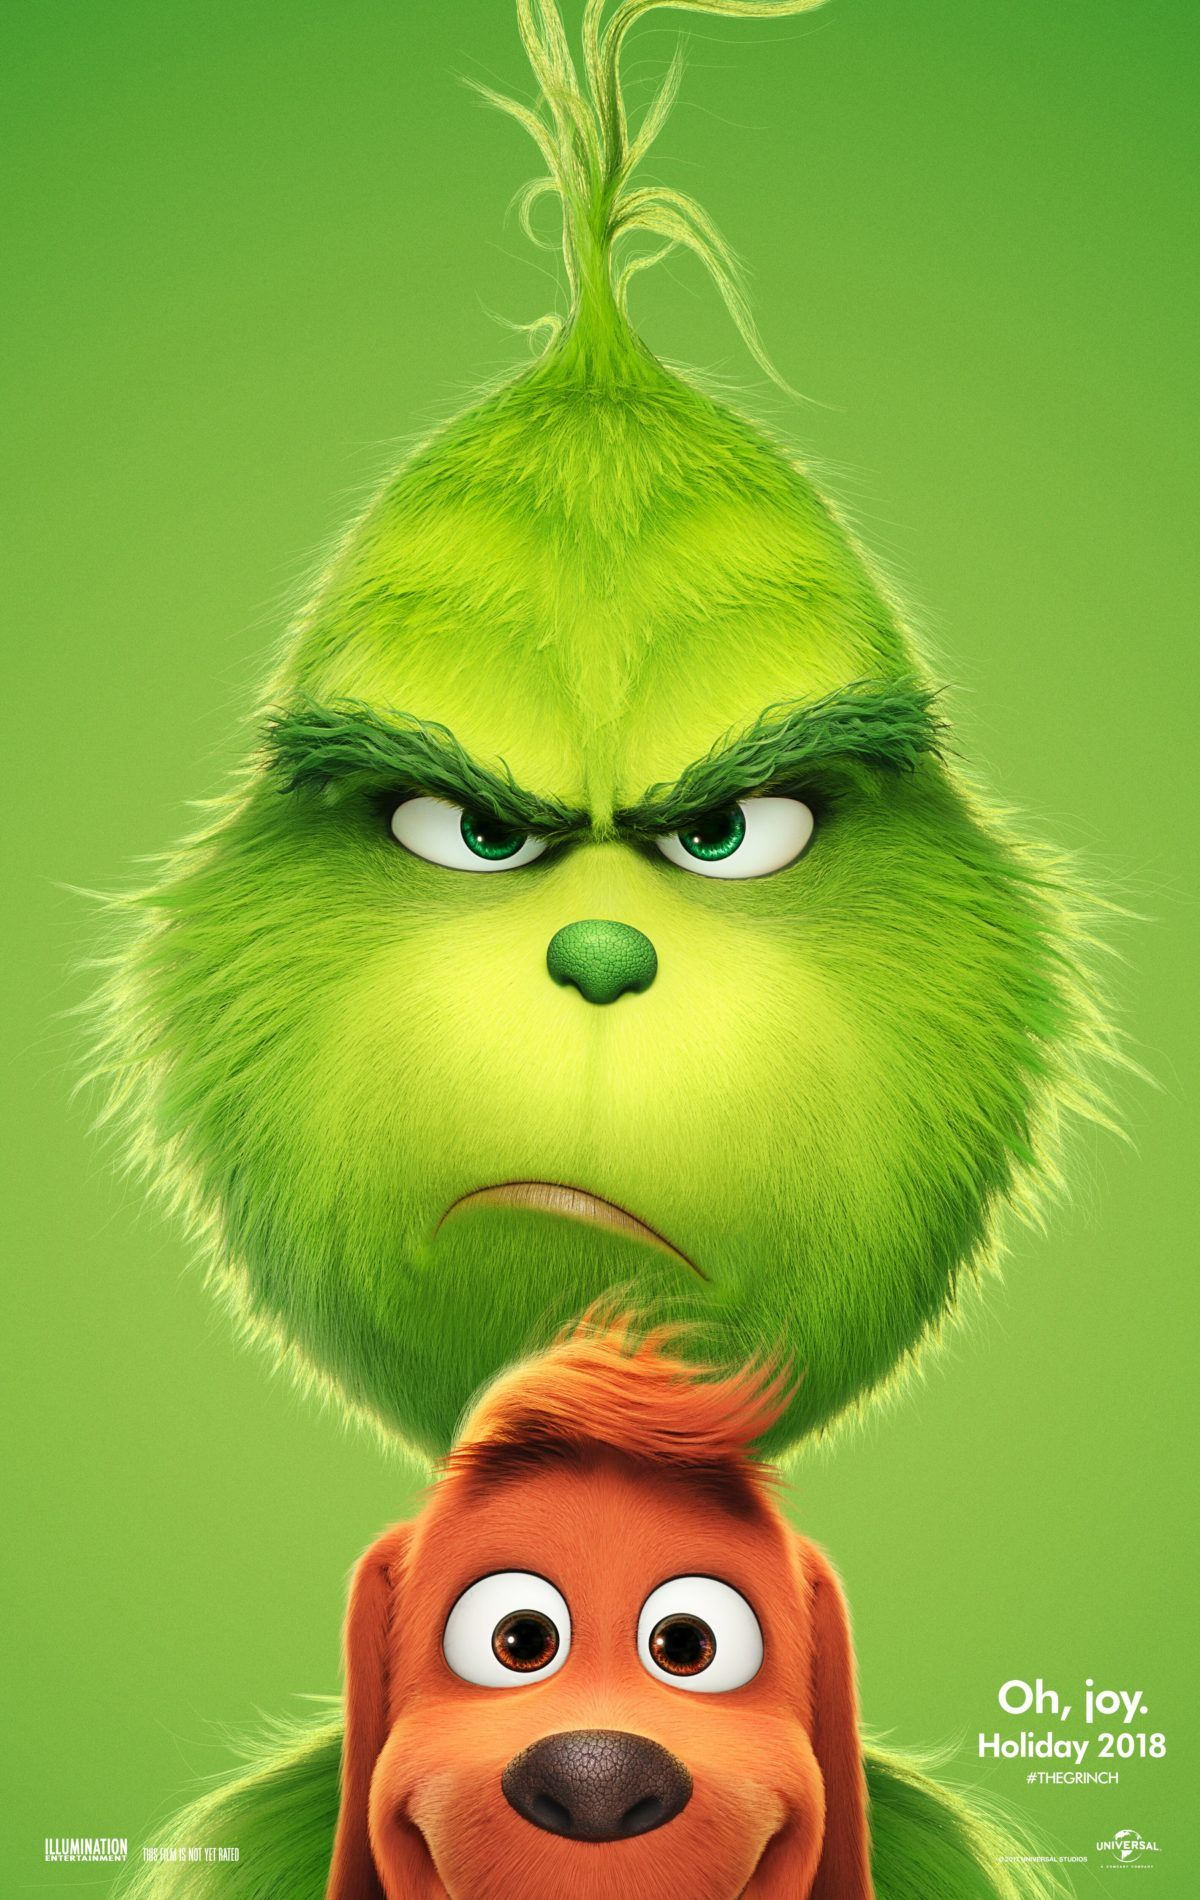 Academy Award® nominee Benedict Cumberbatch lends his voice to the infamous Grinch, who lives a solitary life inside a cave on Mt. Crumpet with only his loyal dog, Max, for company. With a cave rigged with inventions and contraptions for his day-to-day needs, the Grinch only sees his neighbors in Who-ville when he runs out of food.